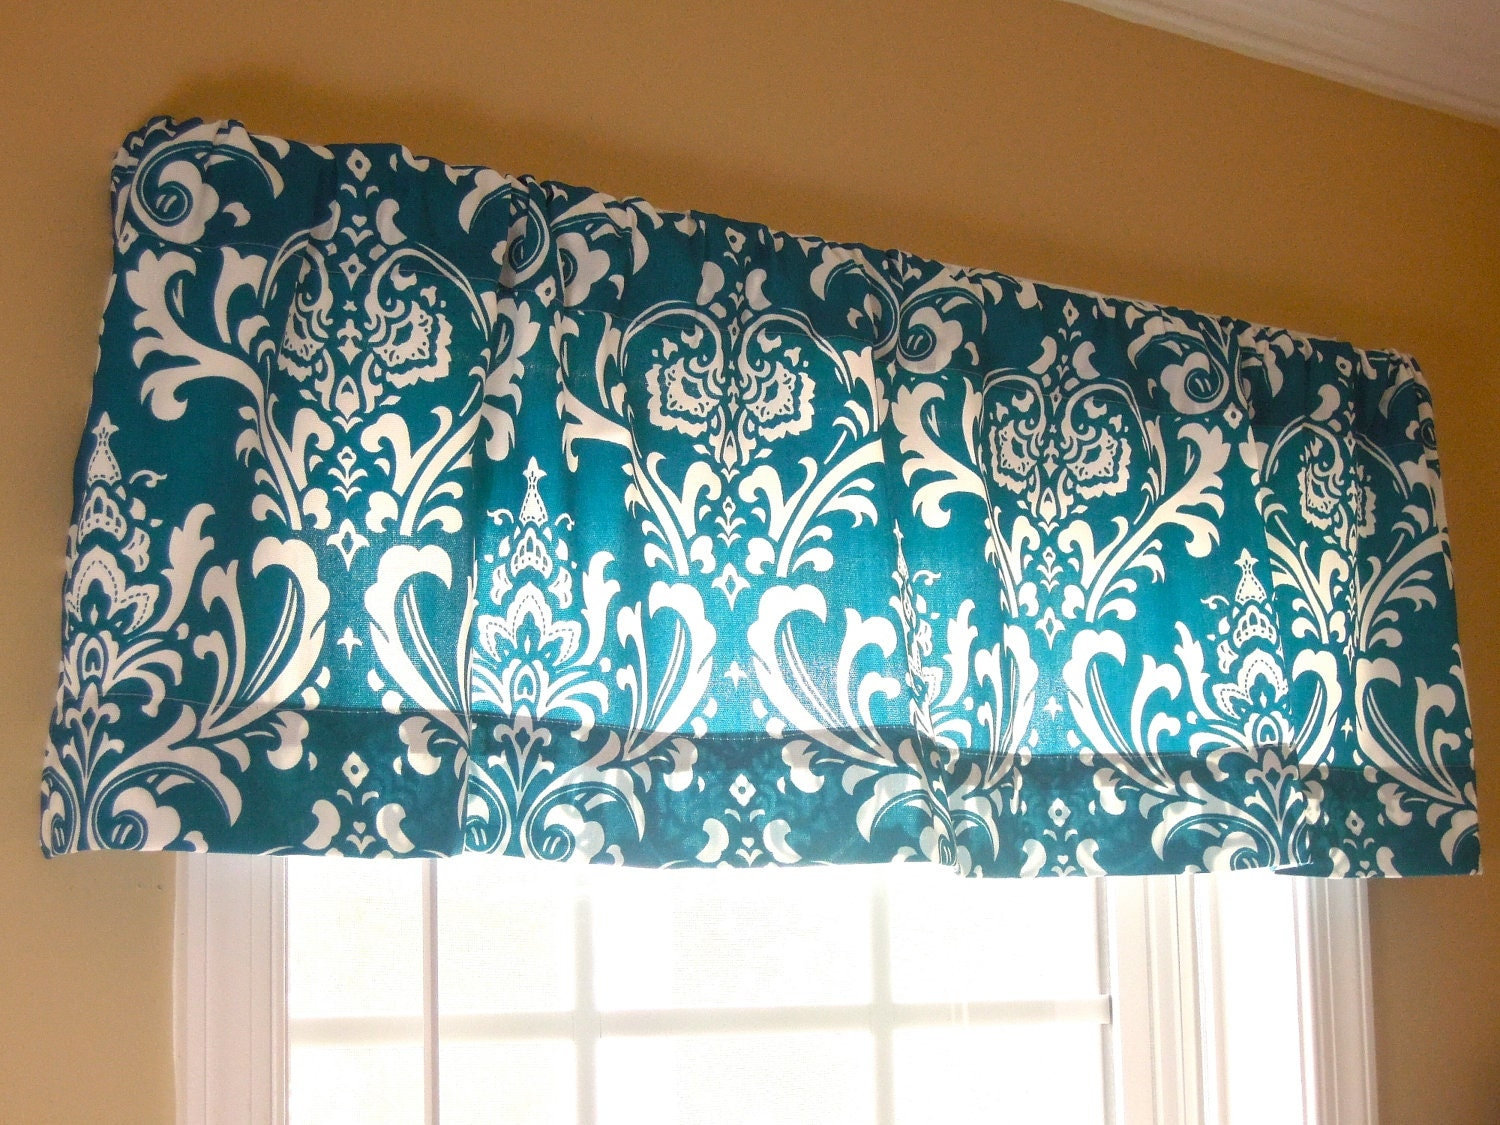 50x15 Window Valance Damask Modern Contemporary Teal